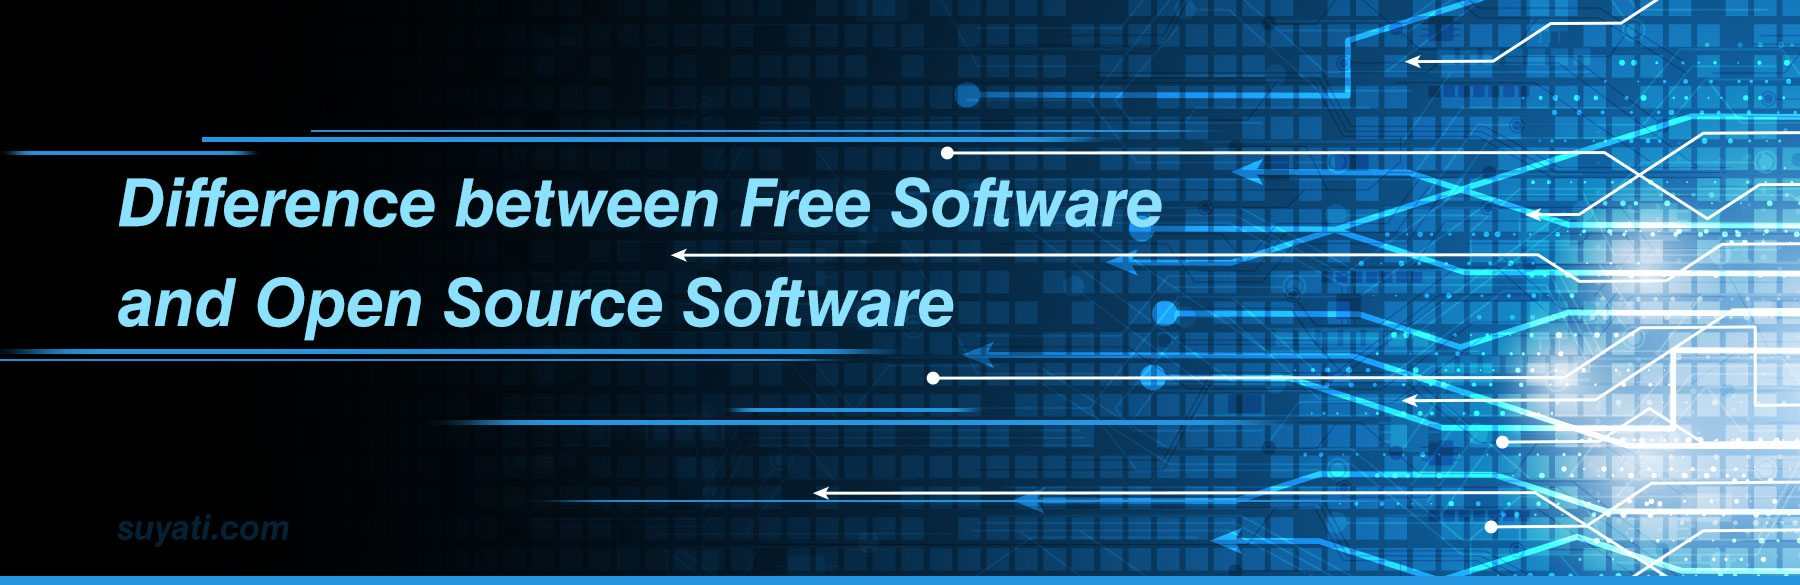 Free Software and Open Source Software